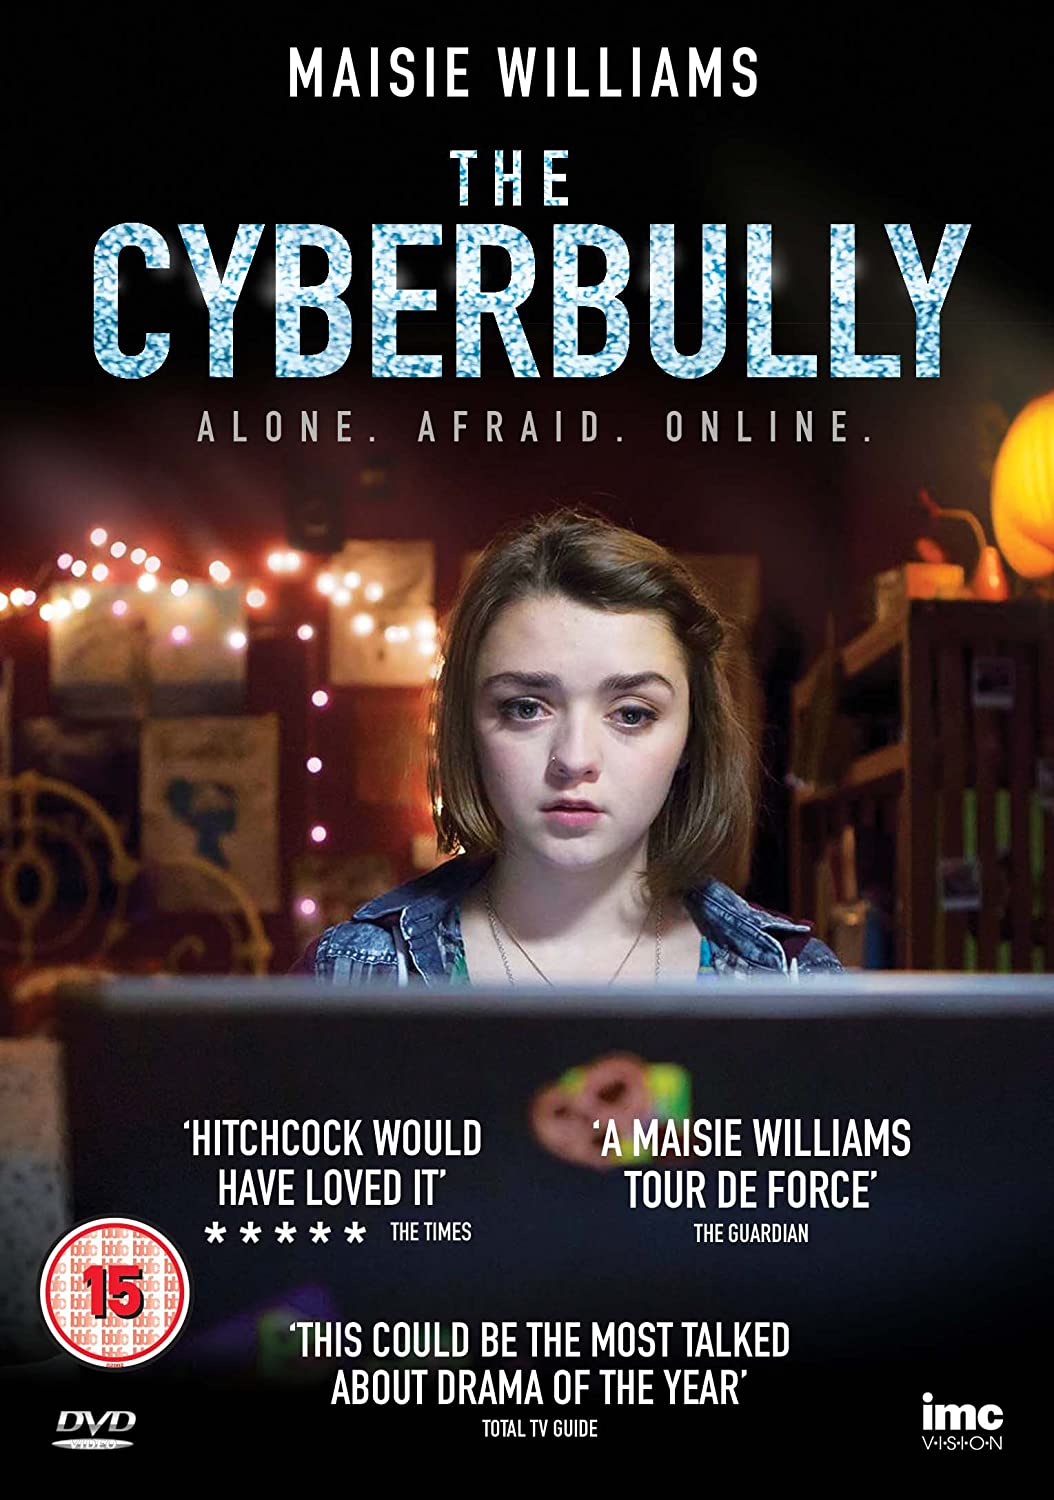 Maisie Williams in Cyberbully Poster